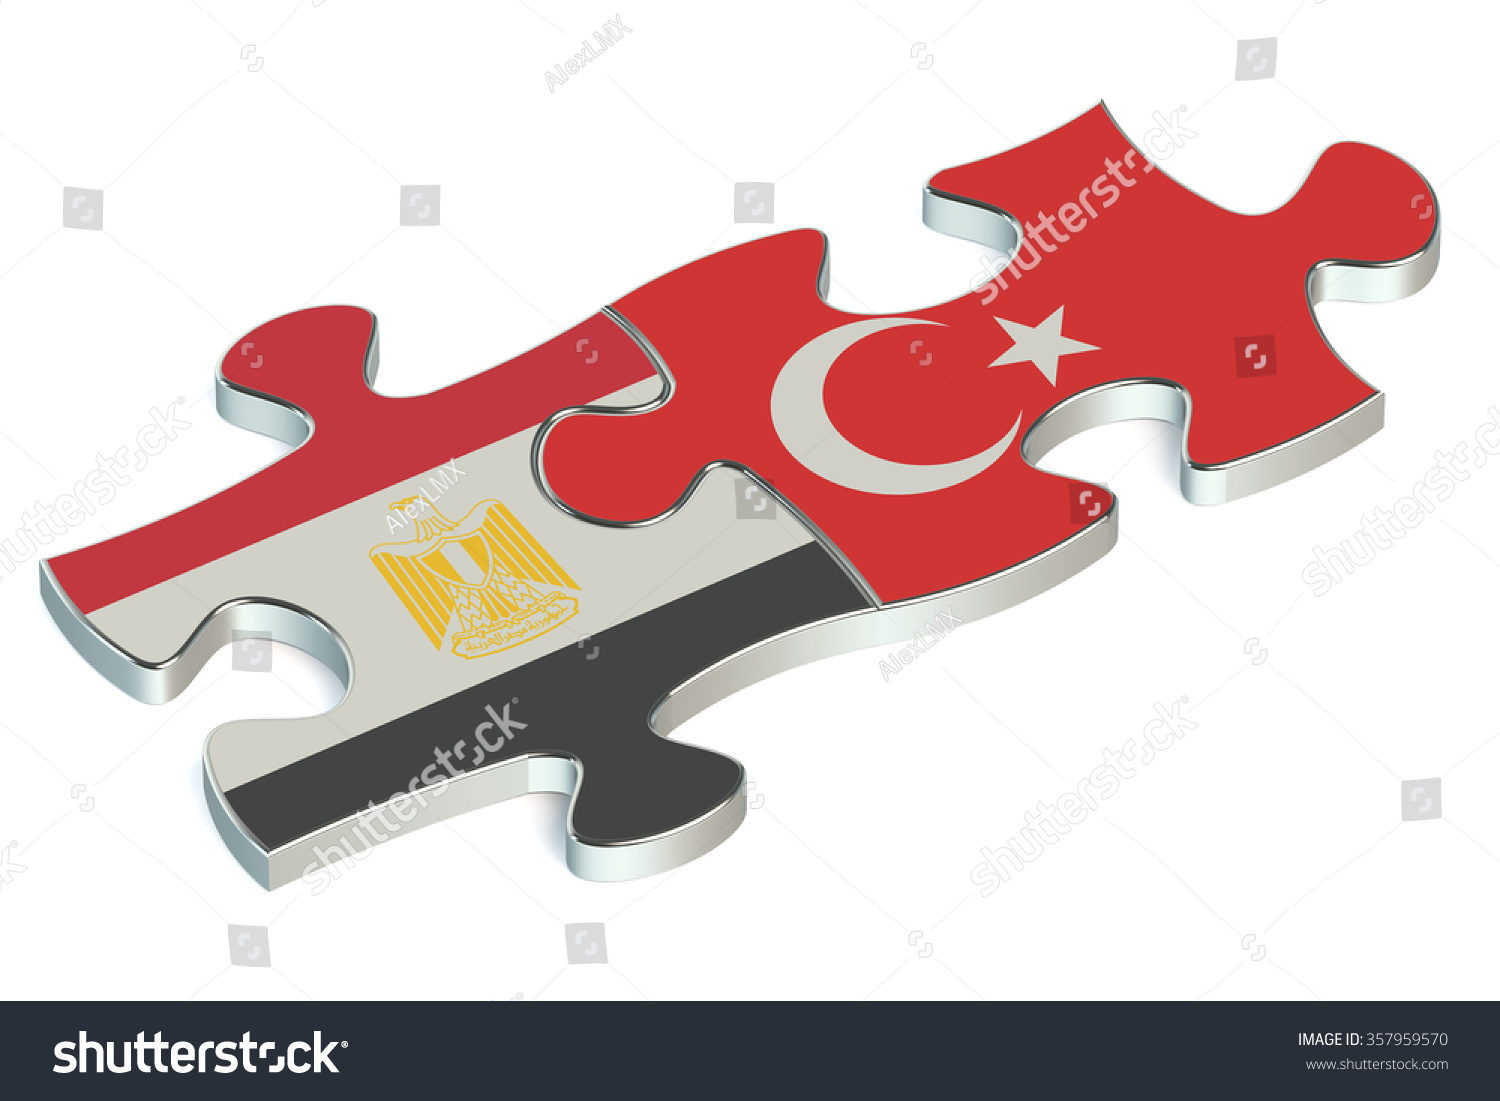 Uncategorized Turkey Puzzle turkey egypt puzzles flags stock illustration 357959570 shutterstock and from flags